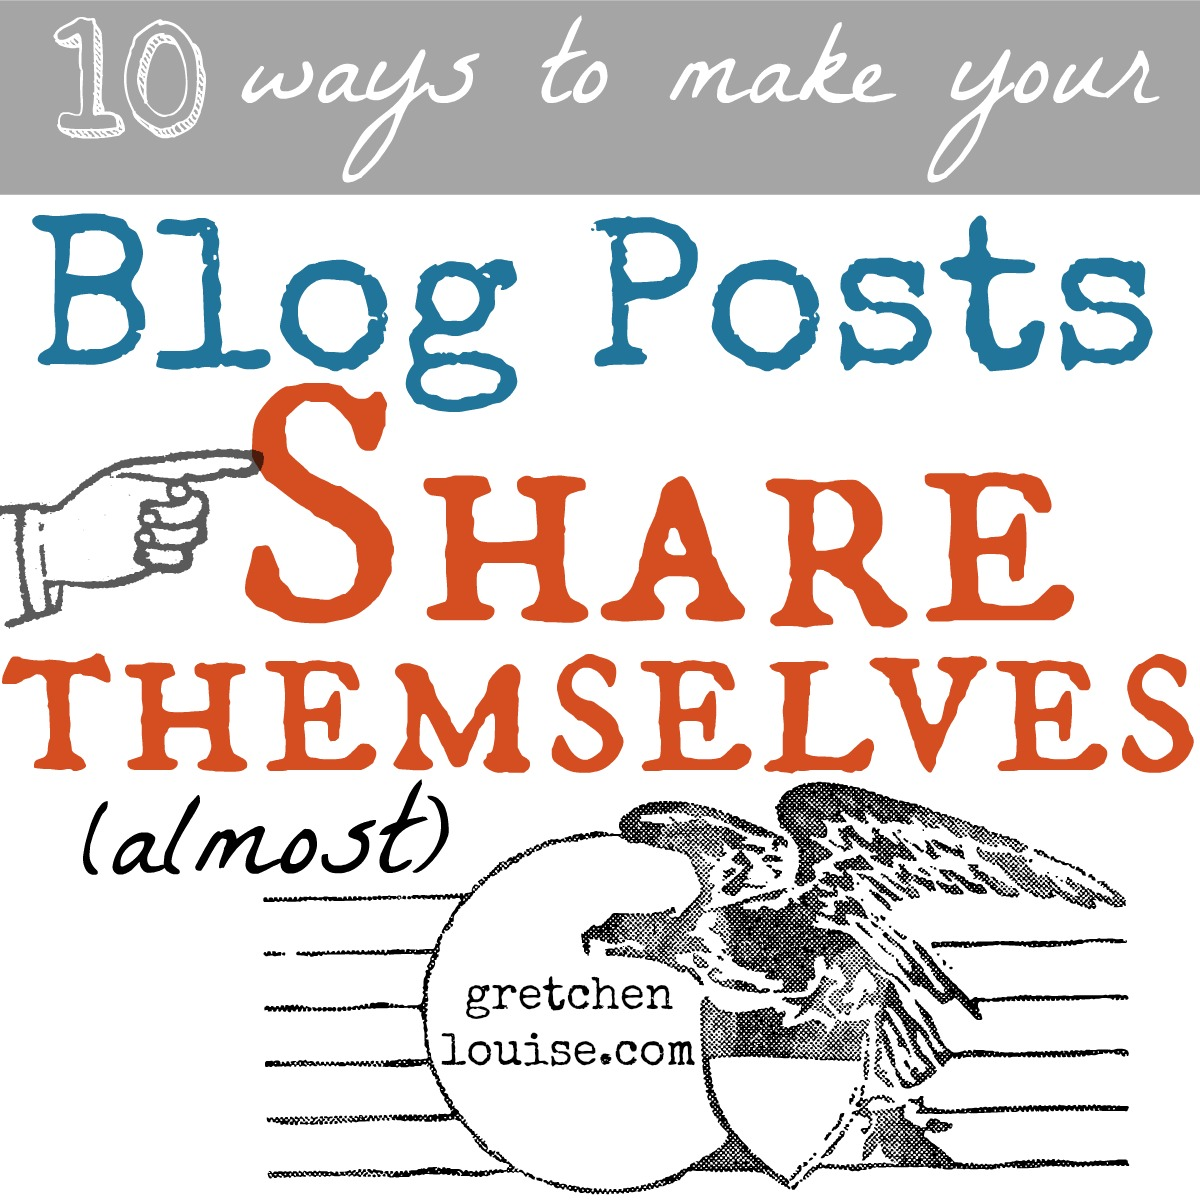 10 Ways to Make Your Blog Posts Share Themselves (almost)